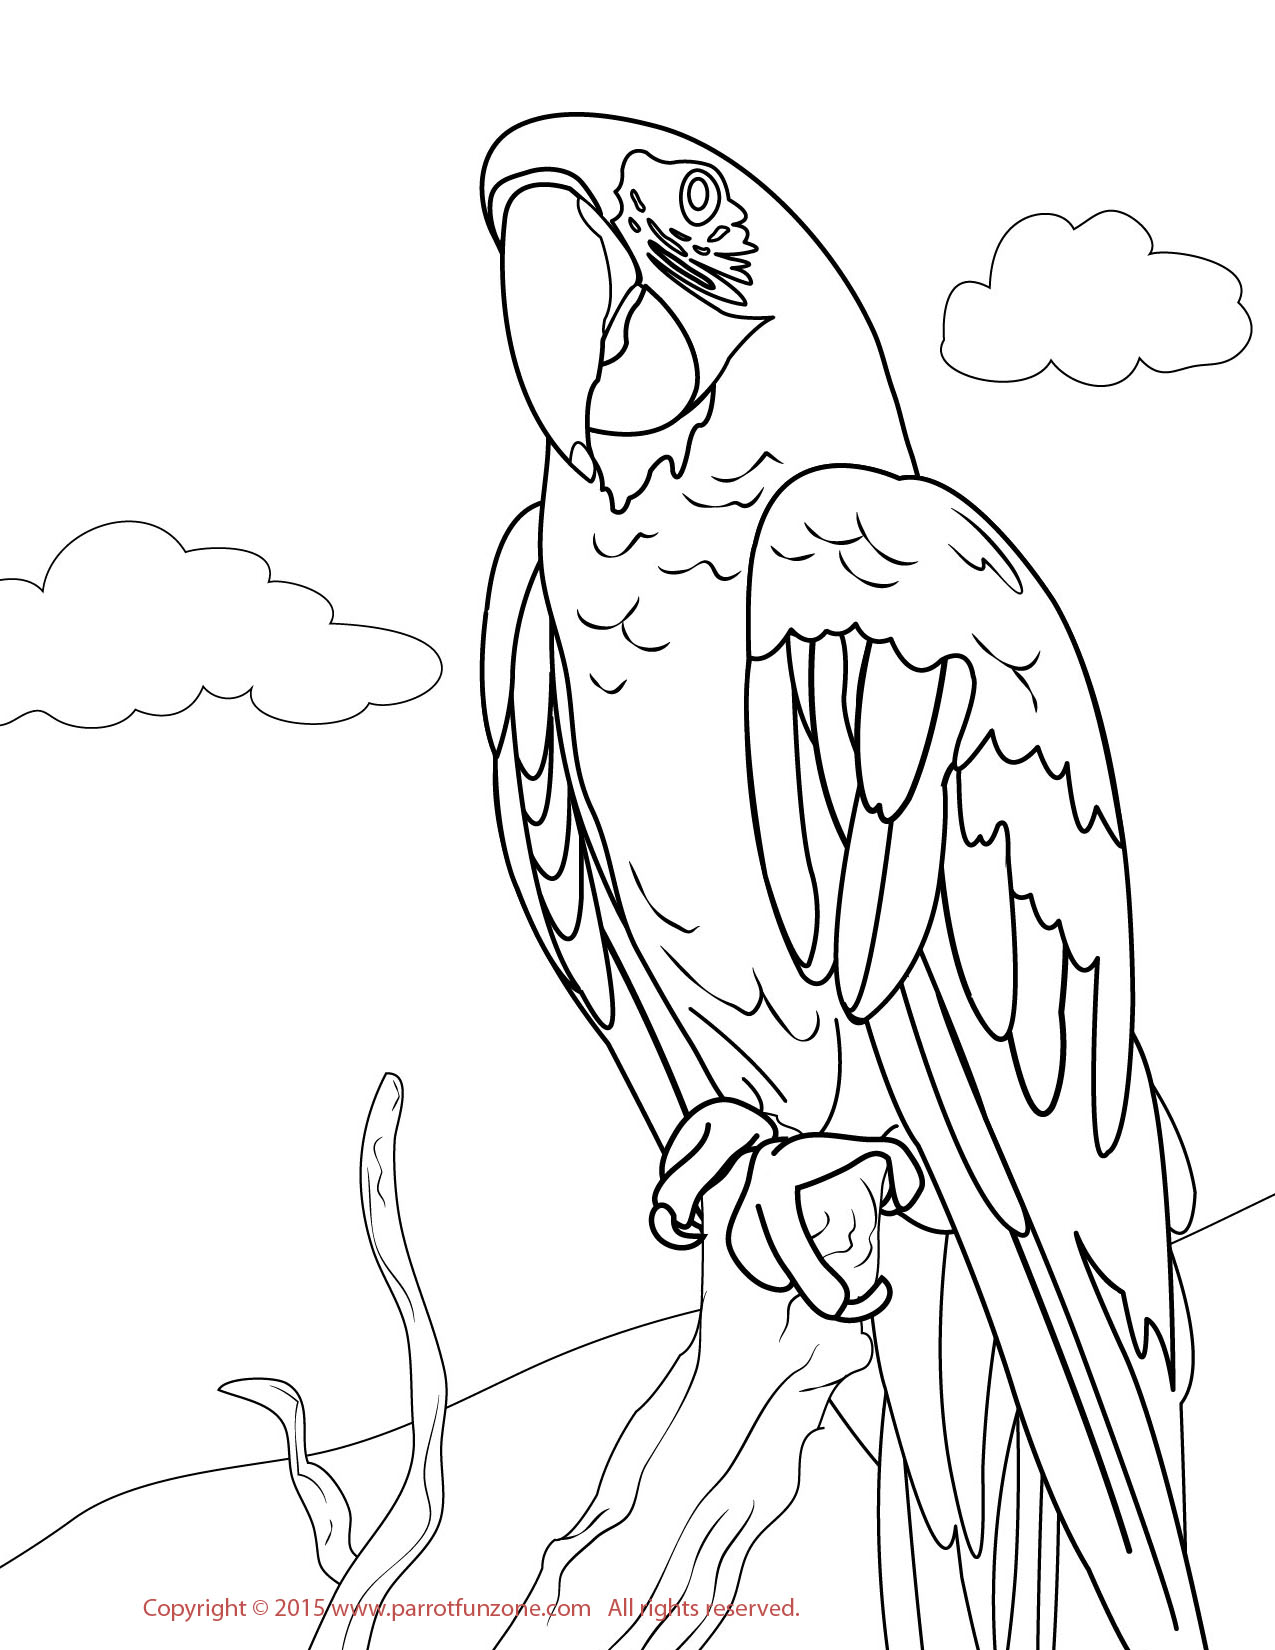 Scarlet macaw coloring page murderthestout for Coloring pages parrot